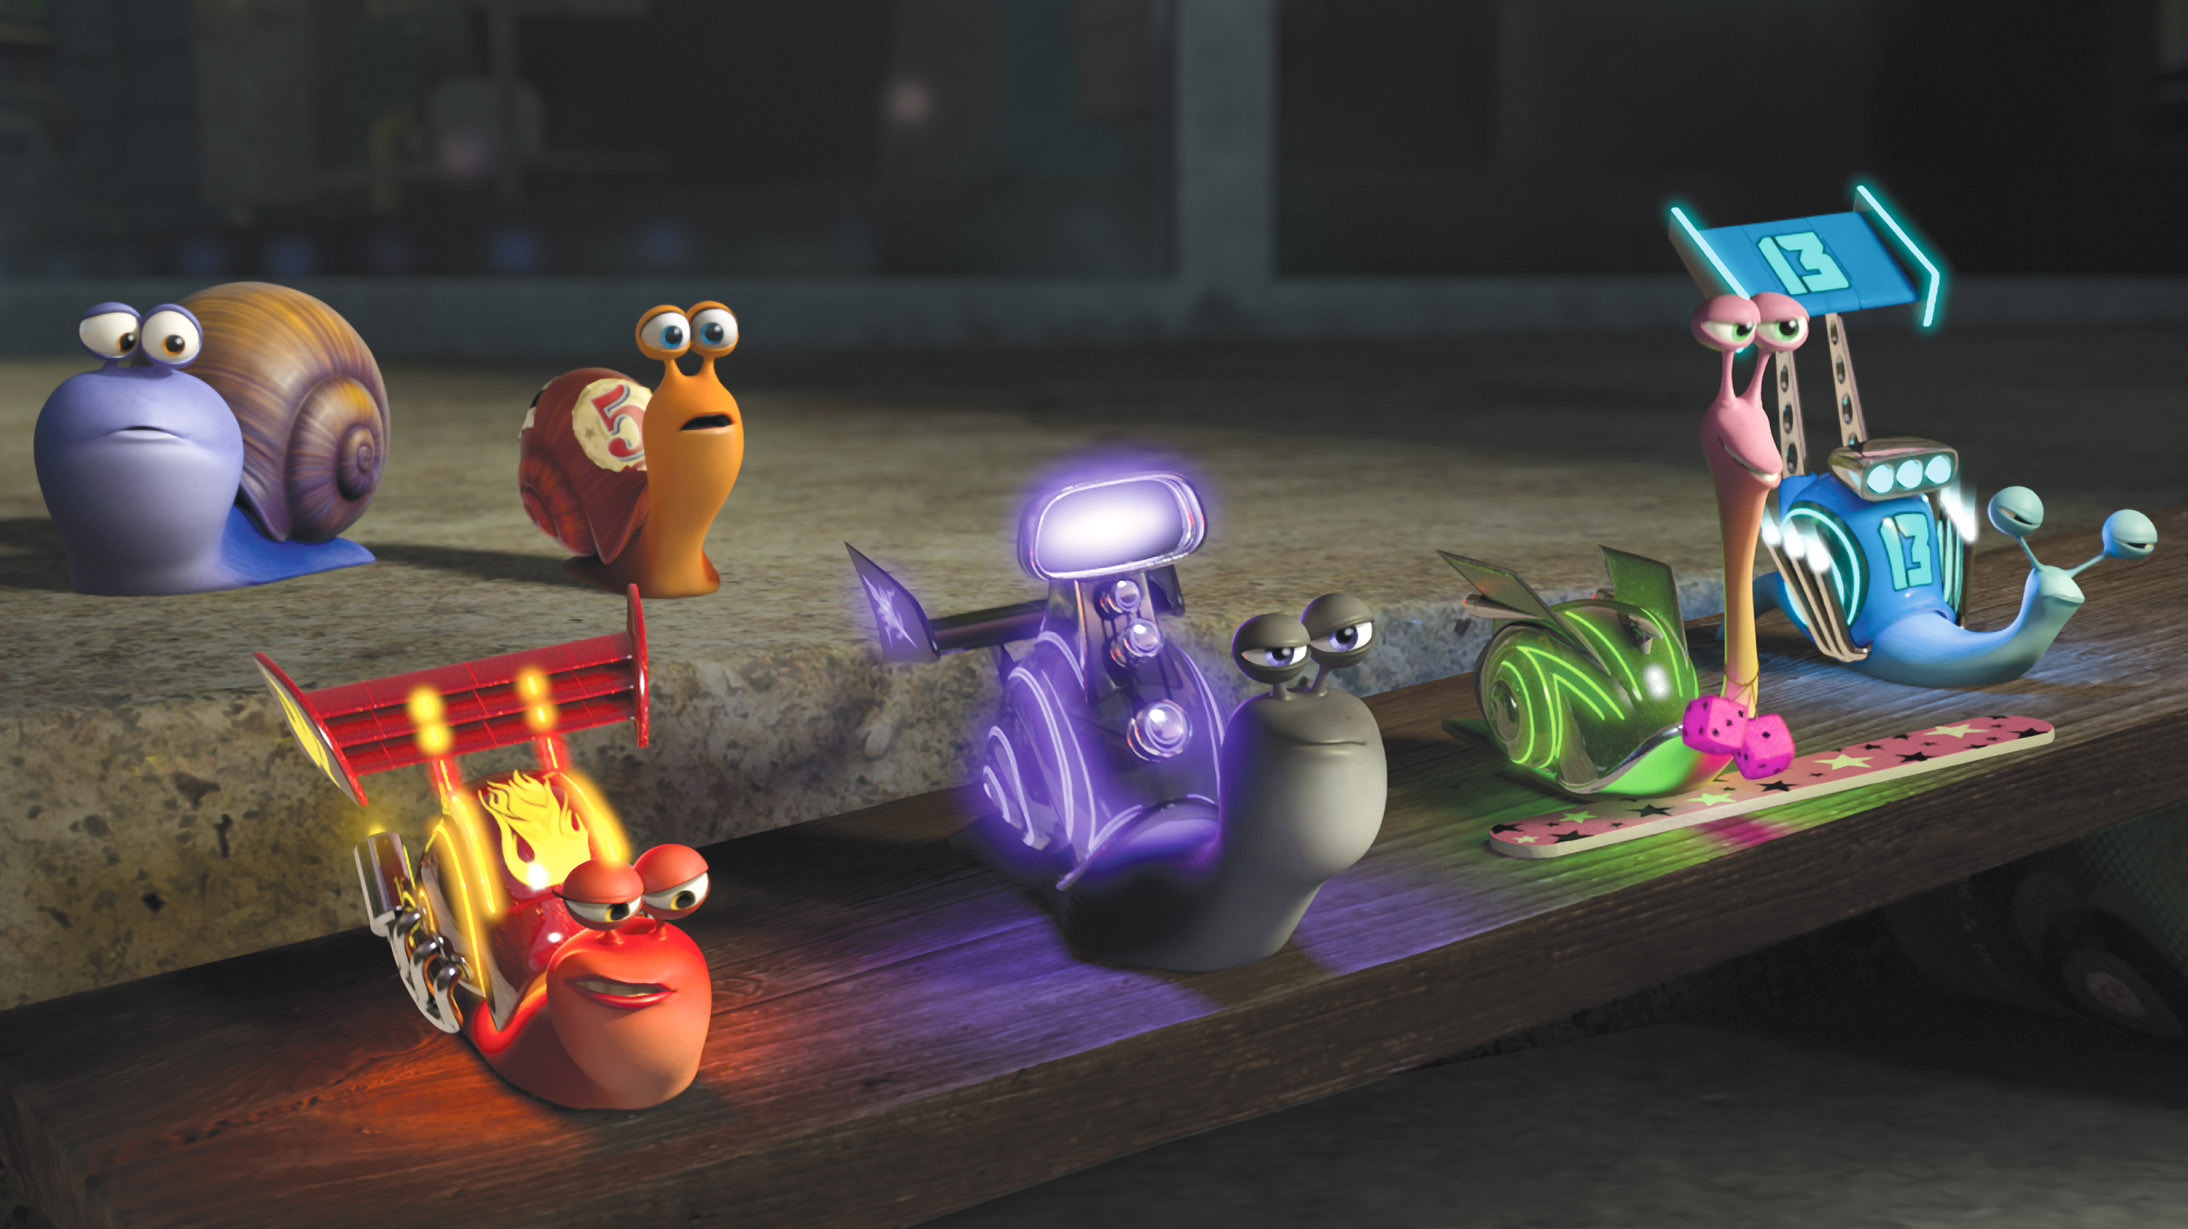 do racing snails drive racial stereotypes in 'turbo'?